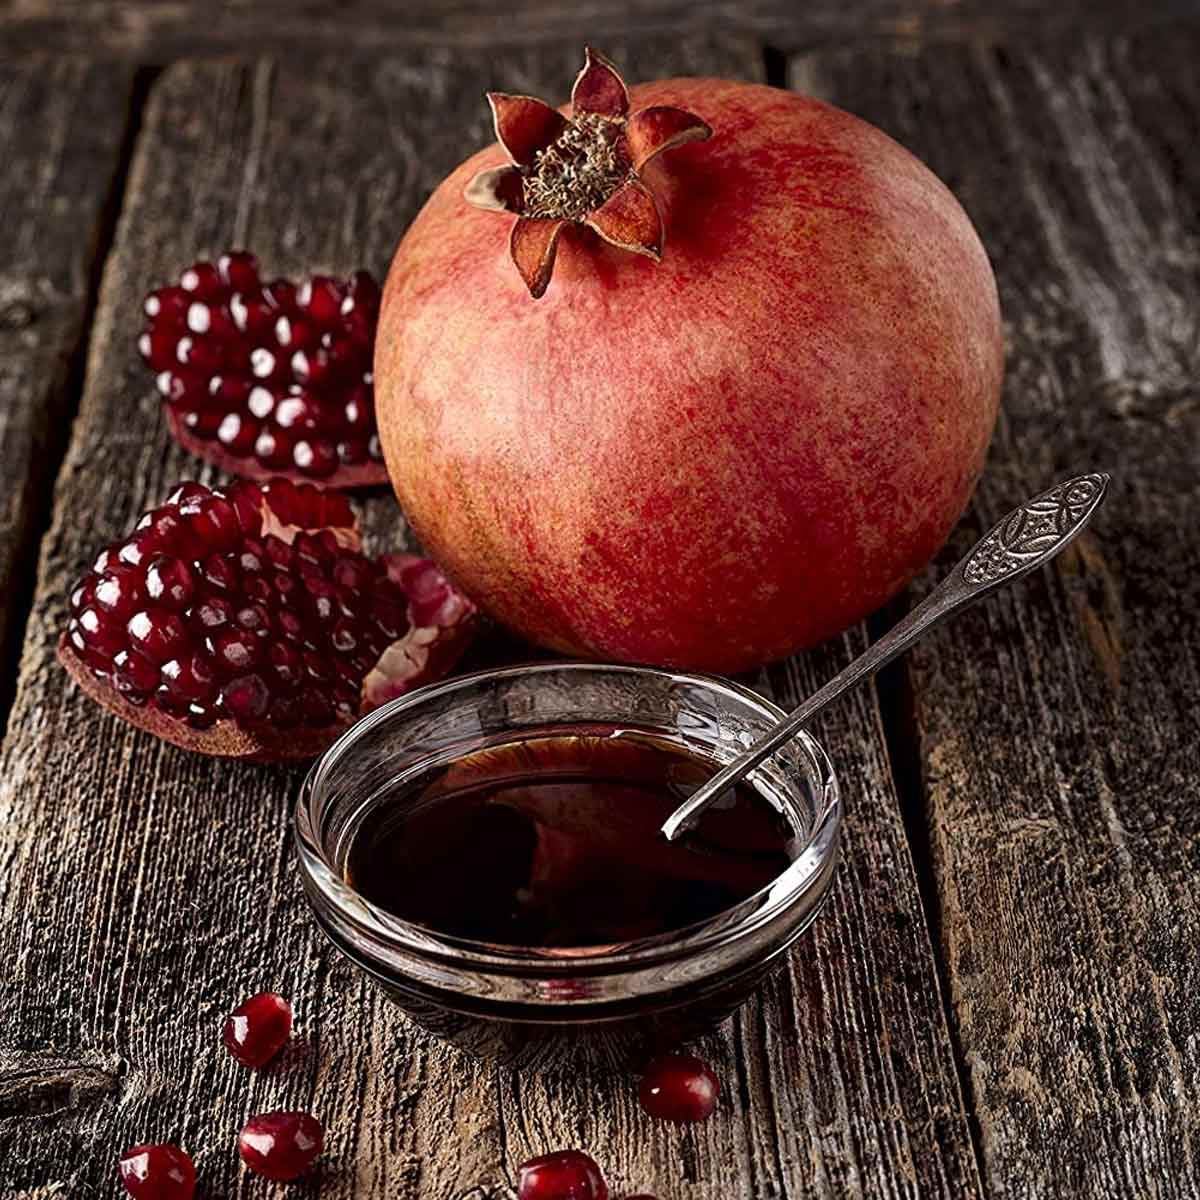 Pomegranate Molasses in clear ramekin with whole pomegranate behind it.